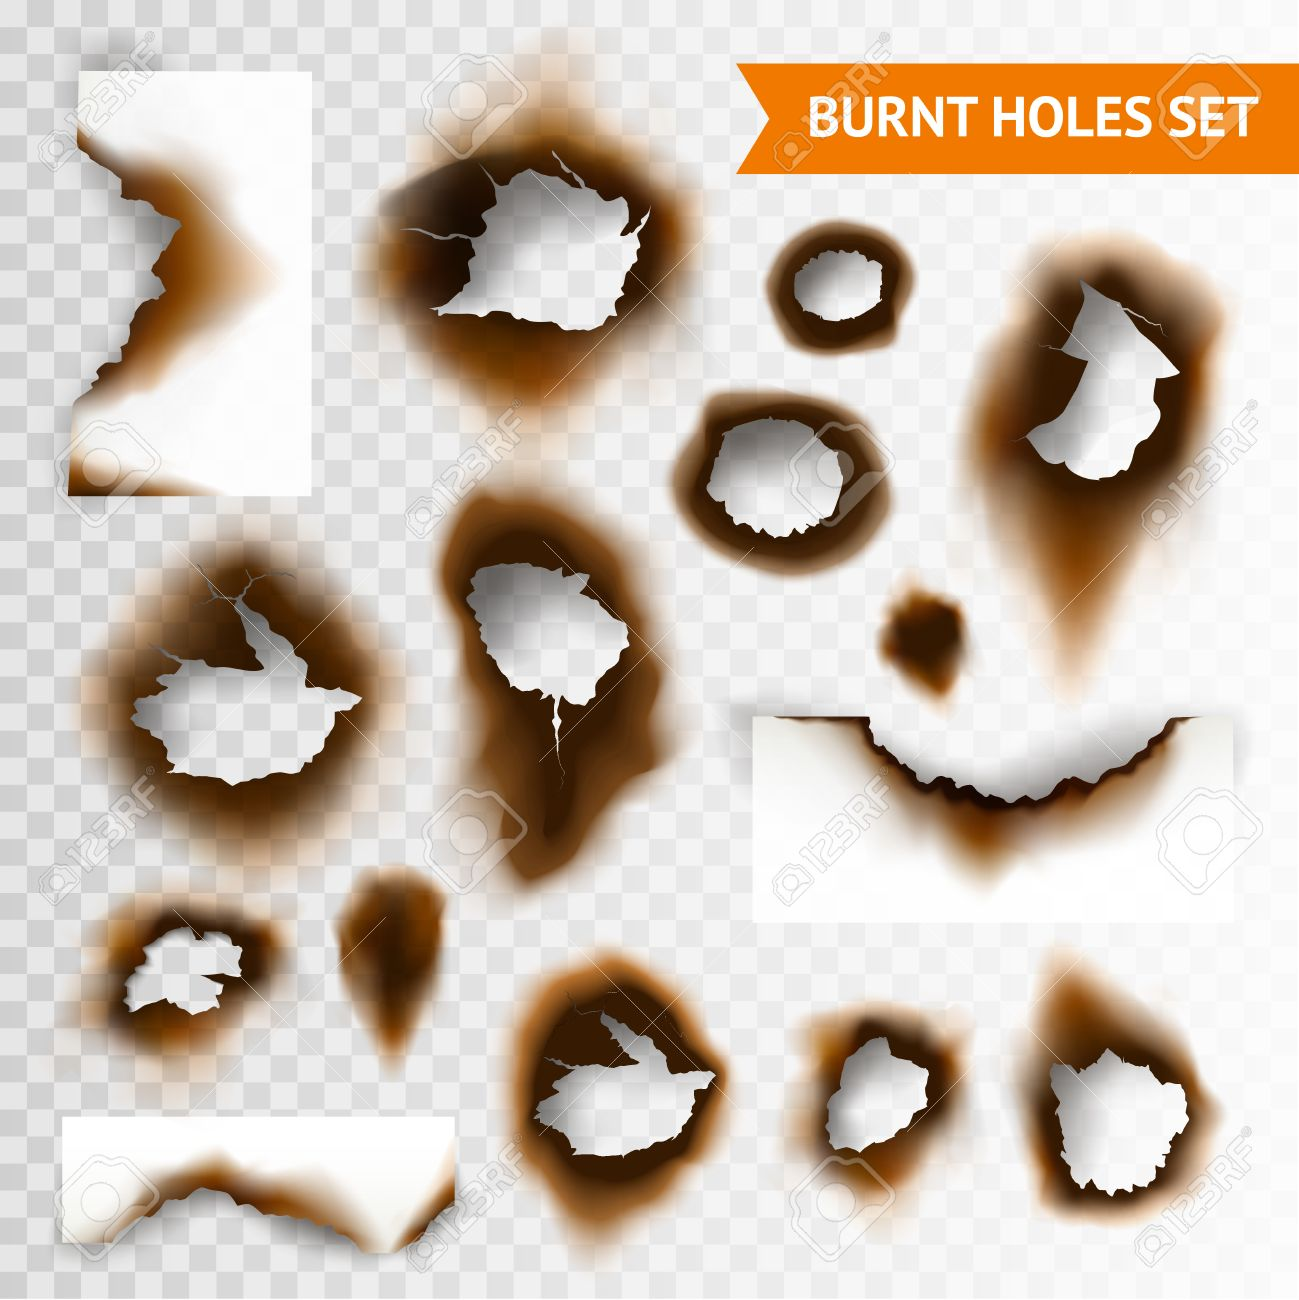 Set of scorched piece of paper and burnt holes on transparent background isolated vector illustration - 60299191